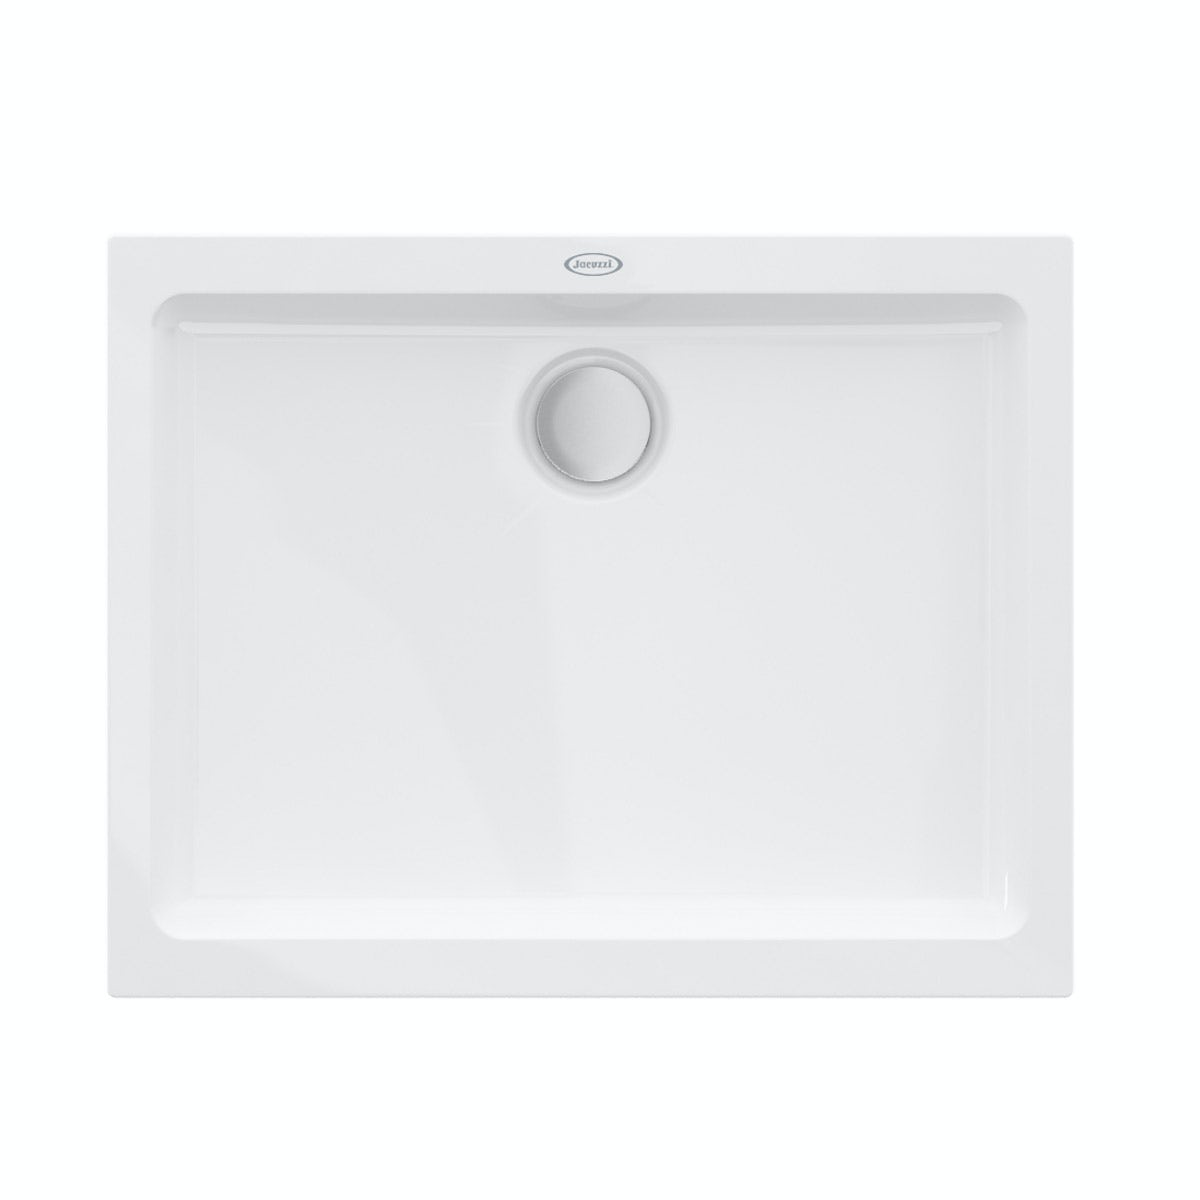 Jacuzzi the Essentials matt white acrylic shower tray 1000 x 800